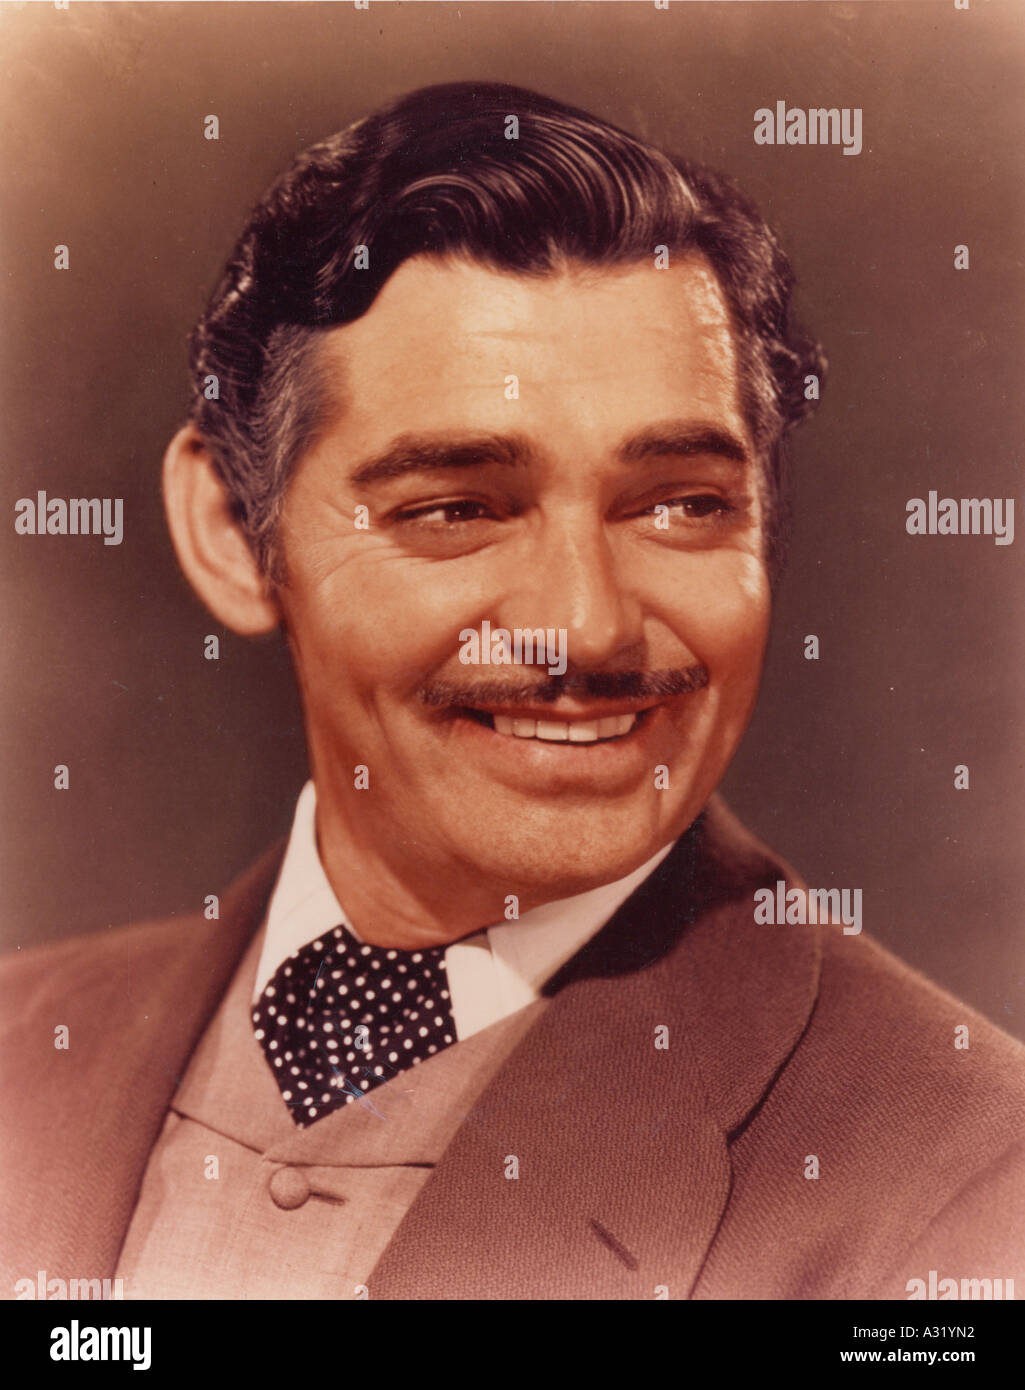 GONE WITH THE WIND Clark Gable in the 1939 MGM film classic - Stock Image